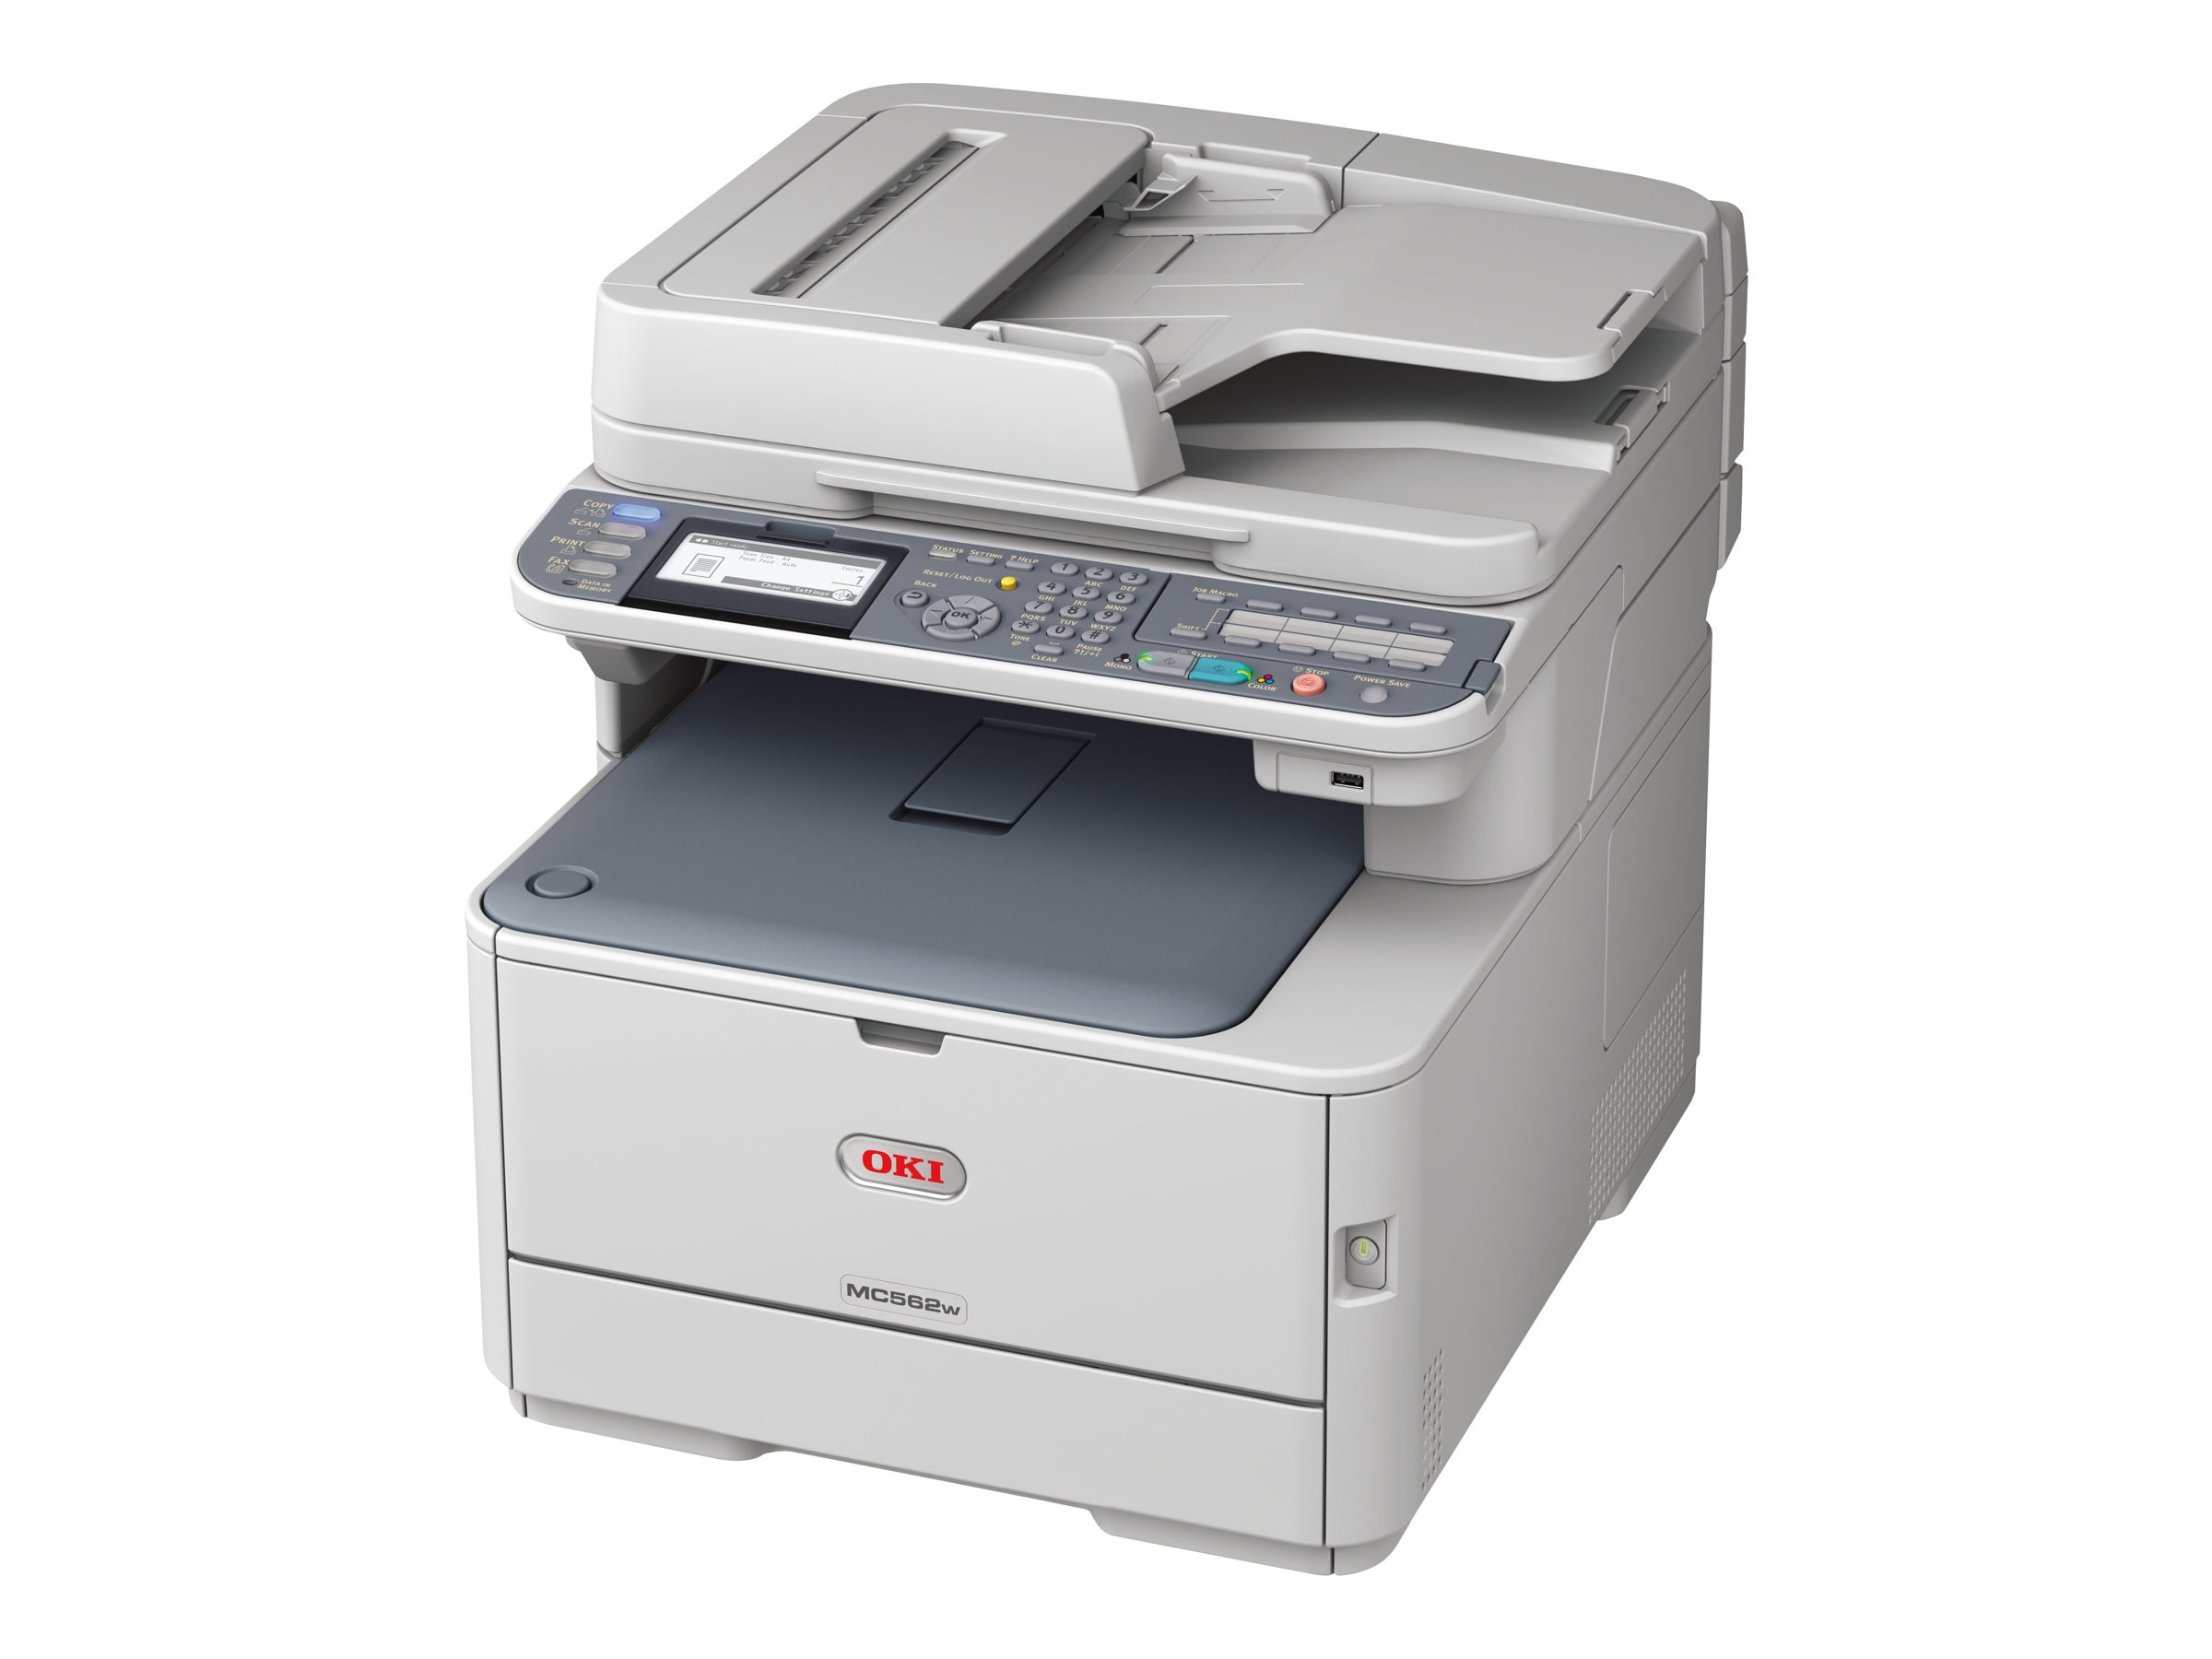 Oki MC562w Color MFP, 62441904